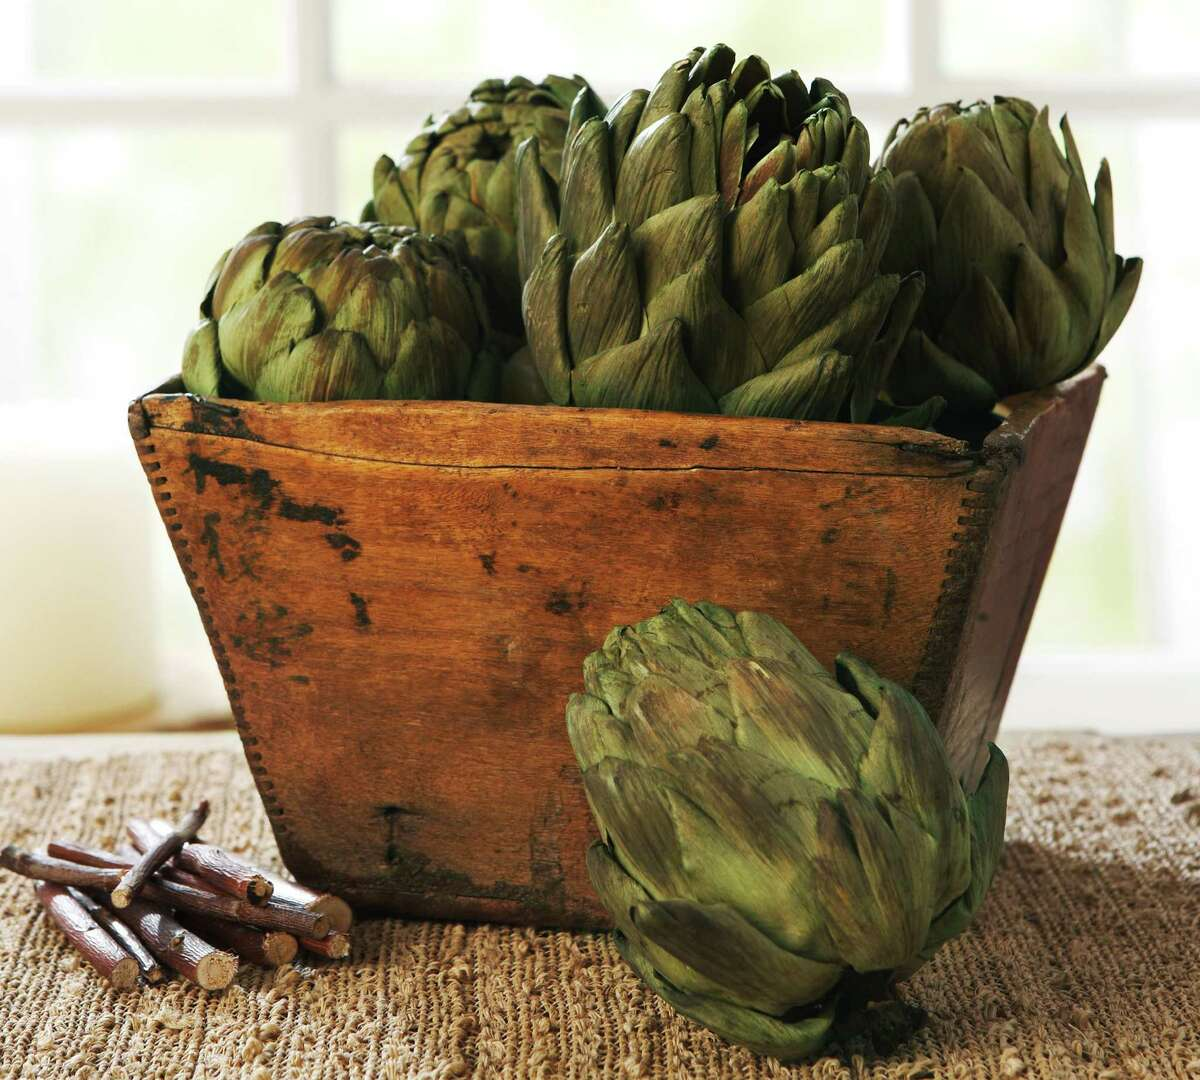 Artichokes, as well as celery and parsley, are loaded with a cancer-fighting element called apigenin.